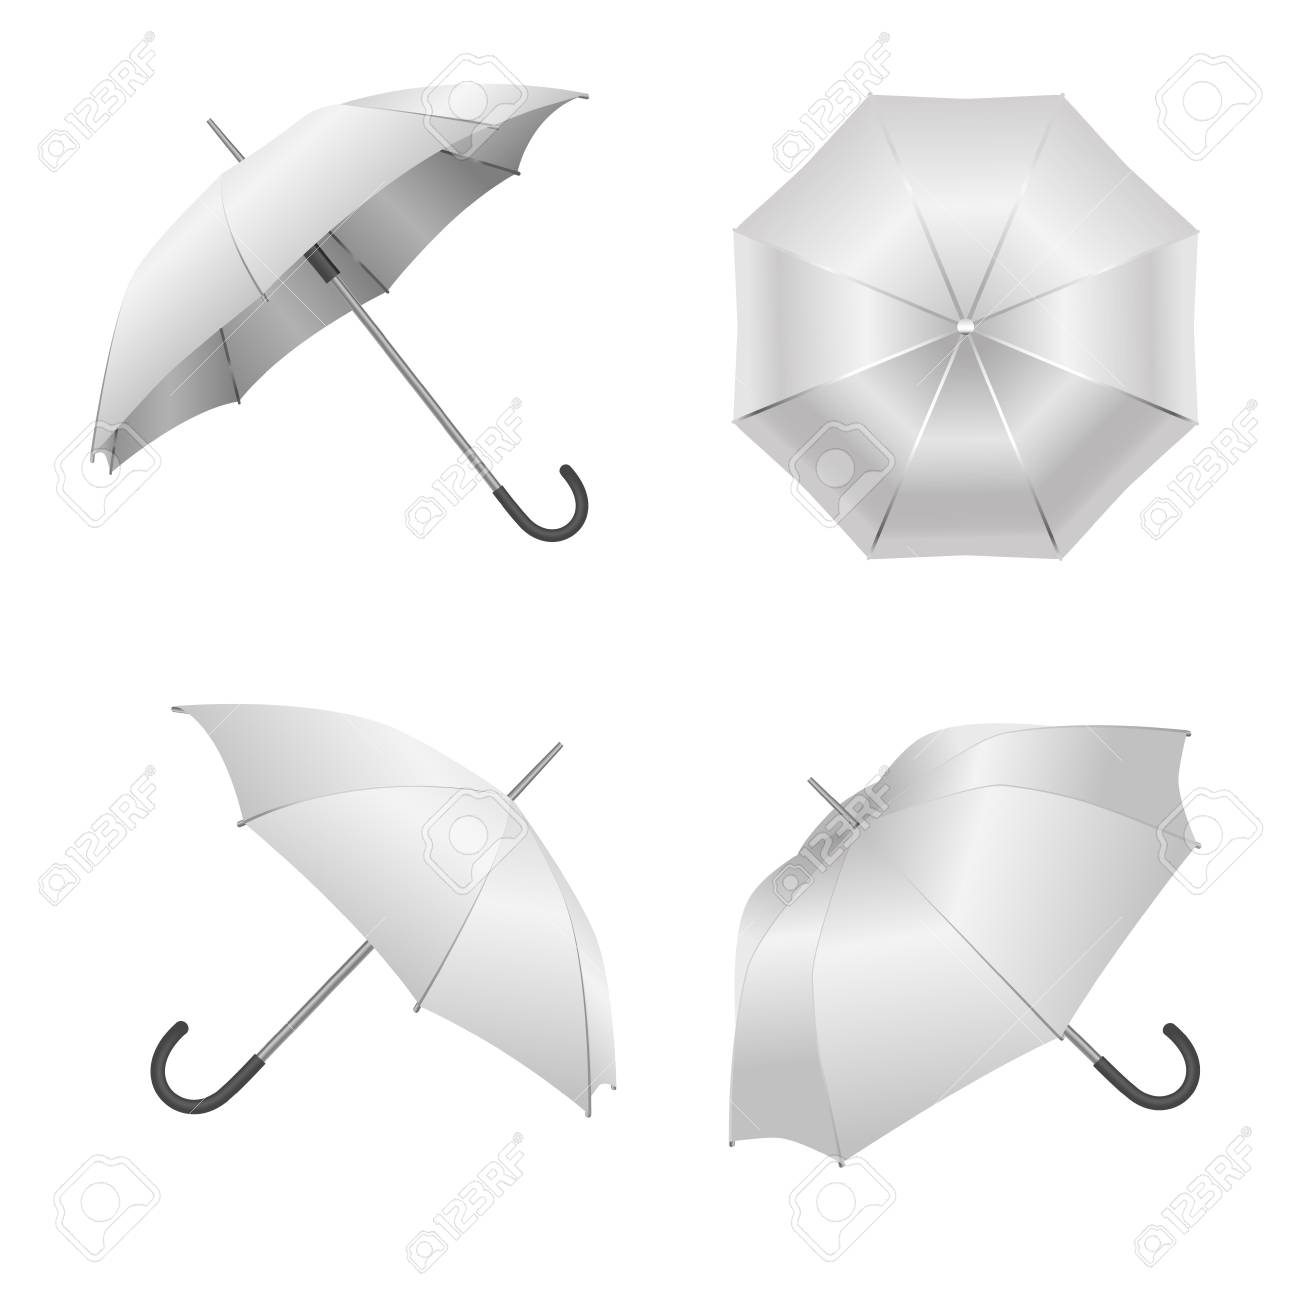 Realistic Detailed 3D White Blank Umbrella Template Mockup Set.. With Blank Umbrella Template